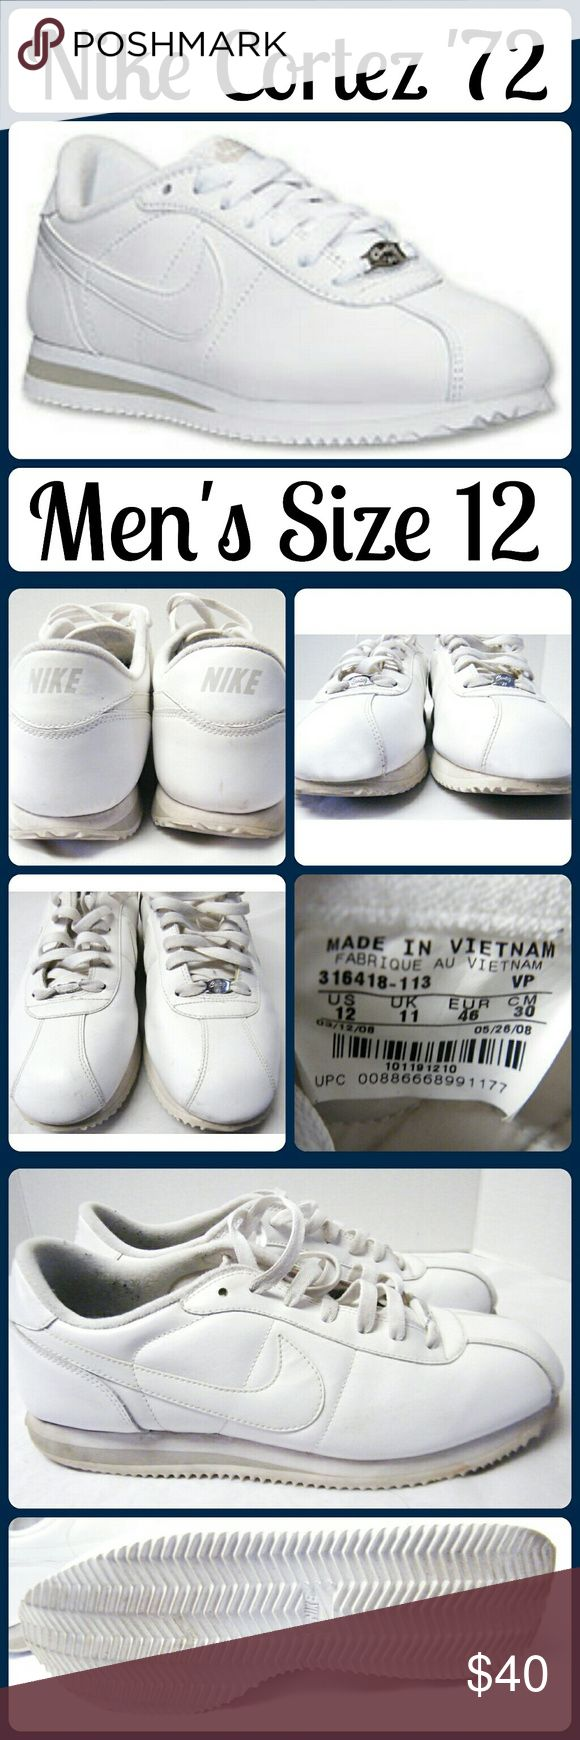 Nike Cortez '72 Tennis Shoes Excellent New Like Condition! Sz 12 Men, worn 1 time - less than 5k steps (according to a fitbit) Nike Shoes Athletic Shoes